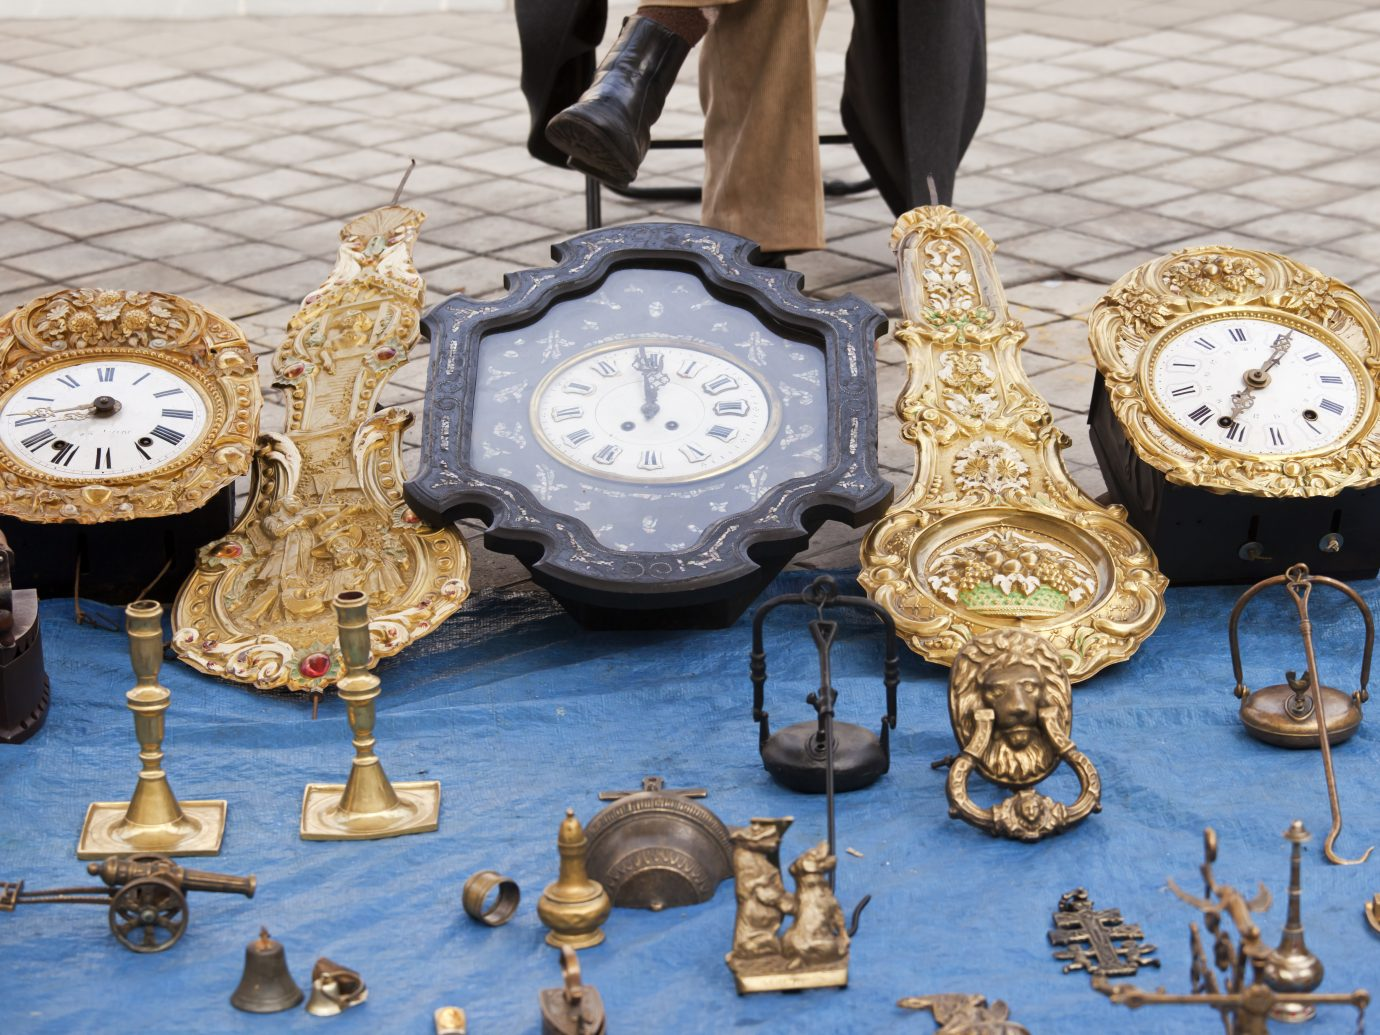 Antique clocks at El Rastro market